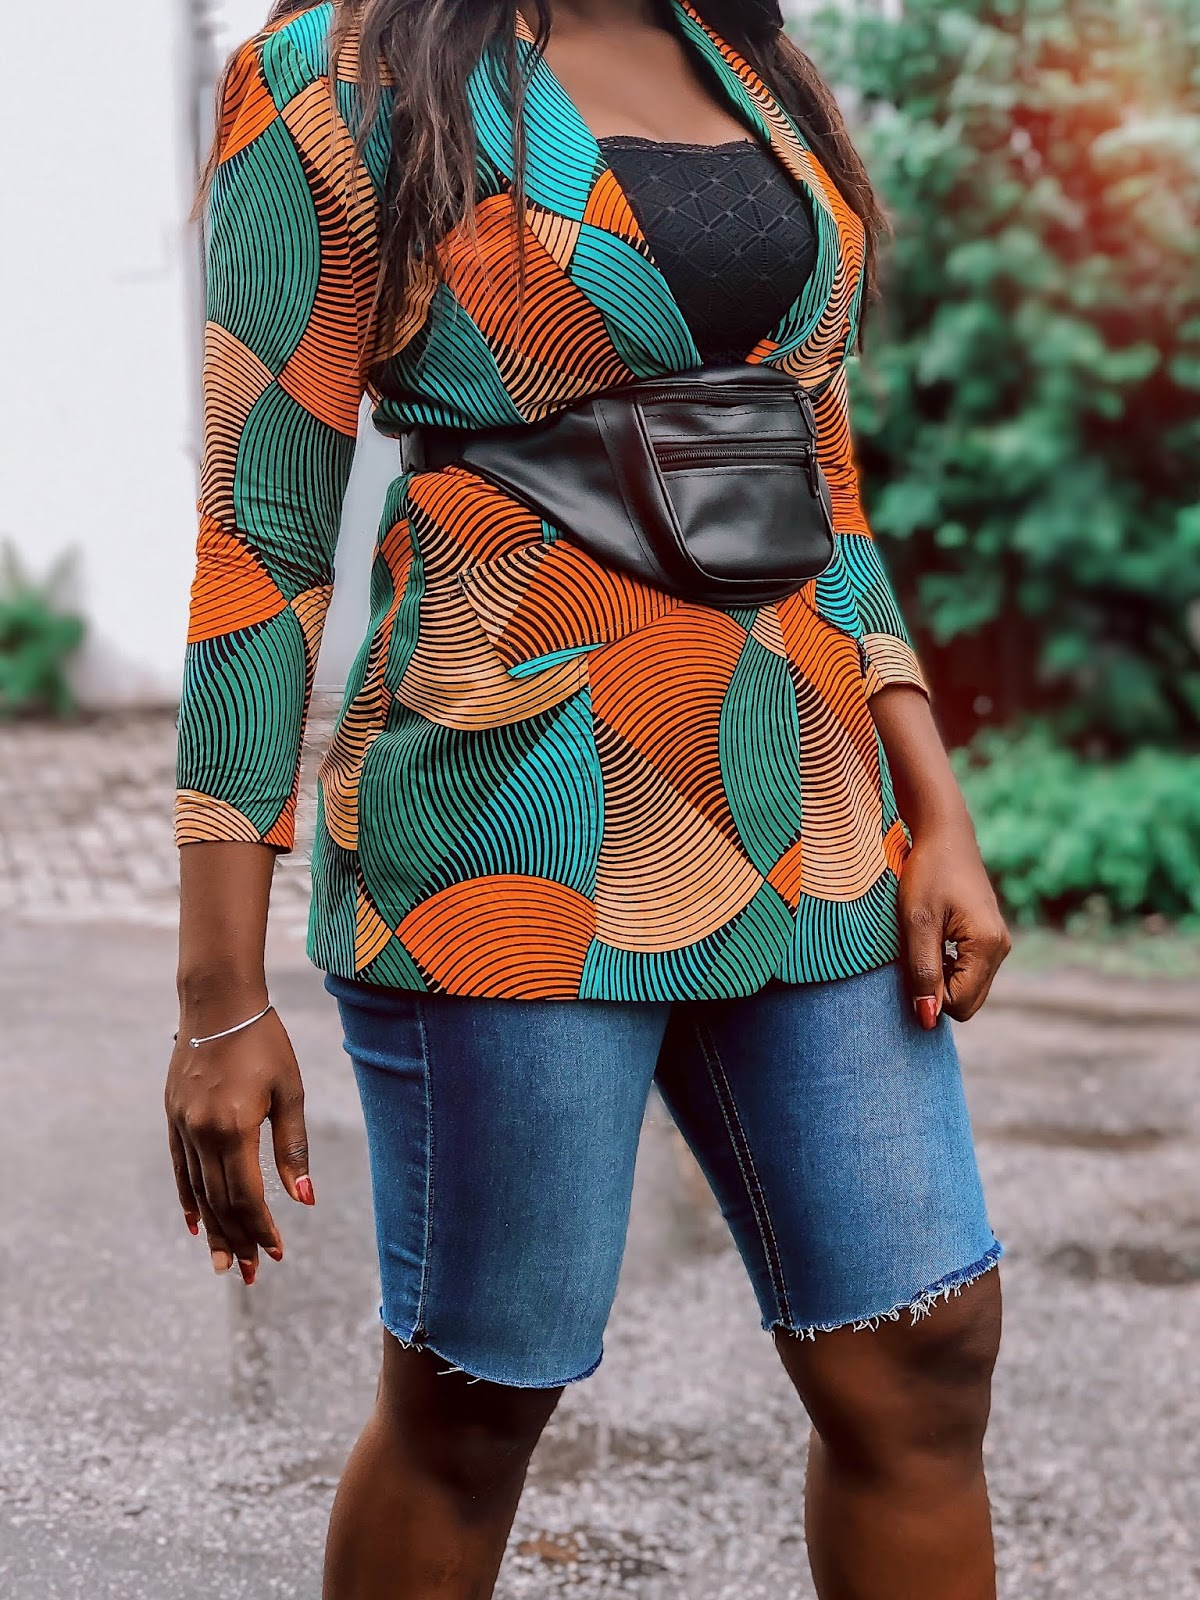 How to style denim cycling shorts with ankara